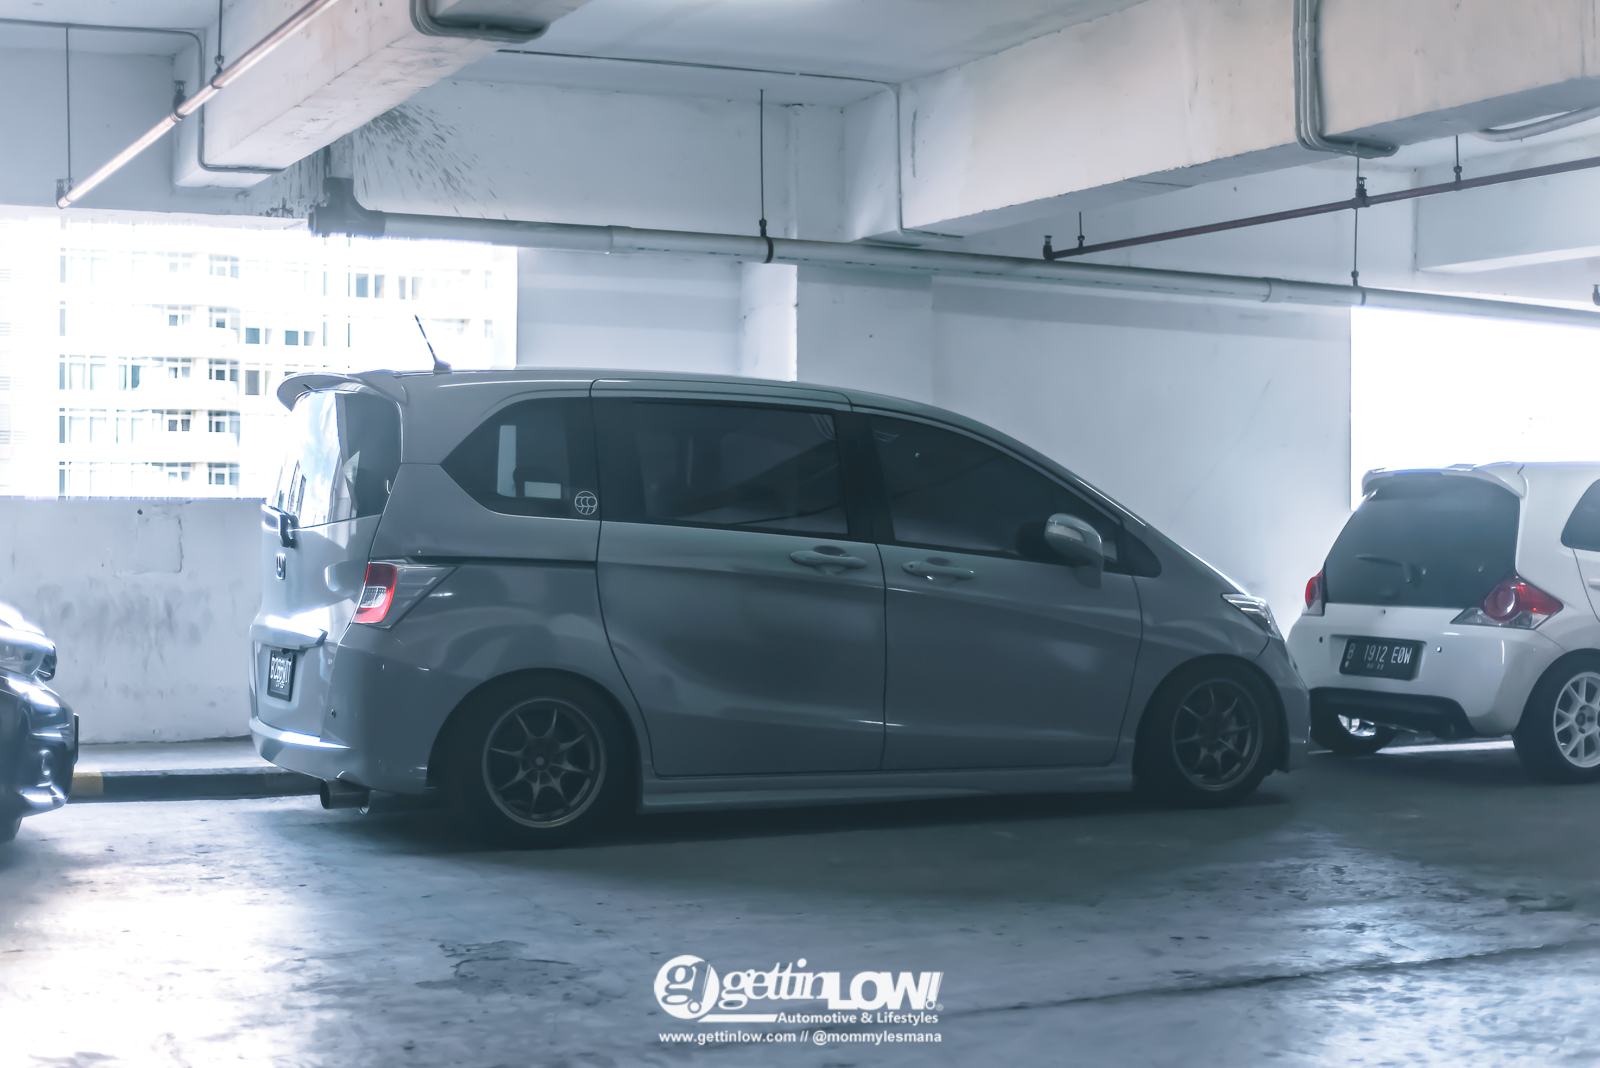 Lowfitment Day 17: Saturday Funday